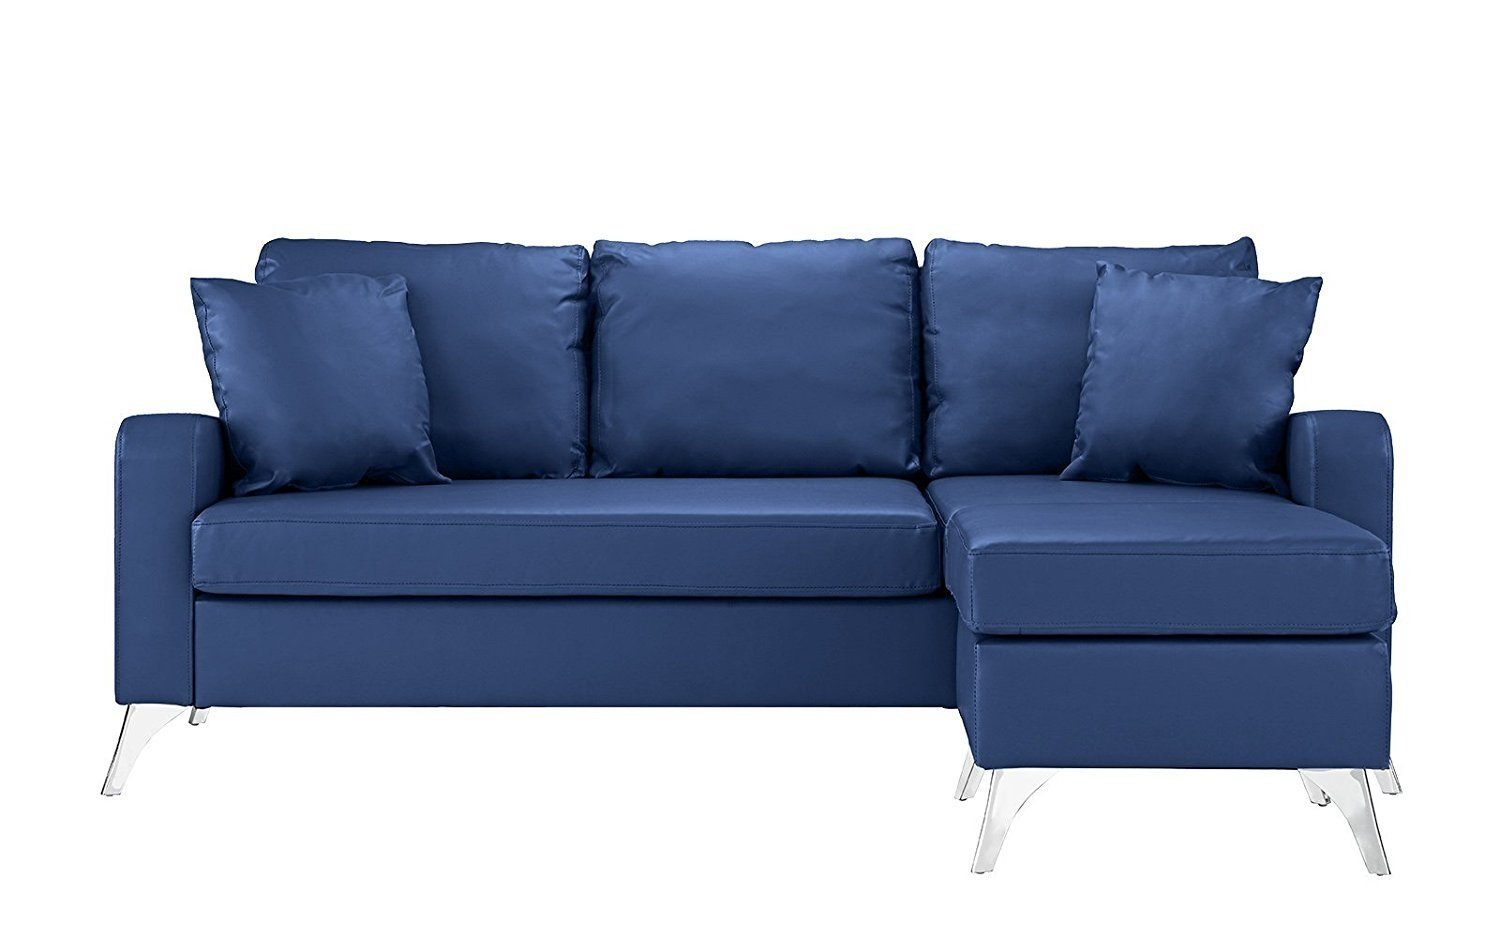 Couch for small space Sectional Bonded Leather Sectional Sofa Small Space Couch W Matching Pillows 2 Black Ebay Bonded Leather Sectional Sofa Small Space Couch W Matching